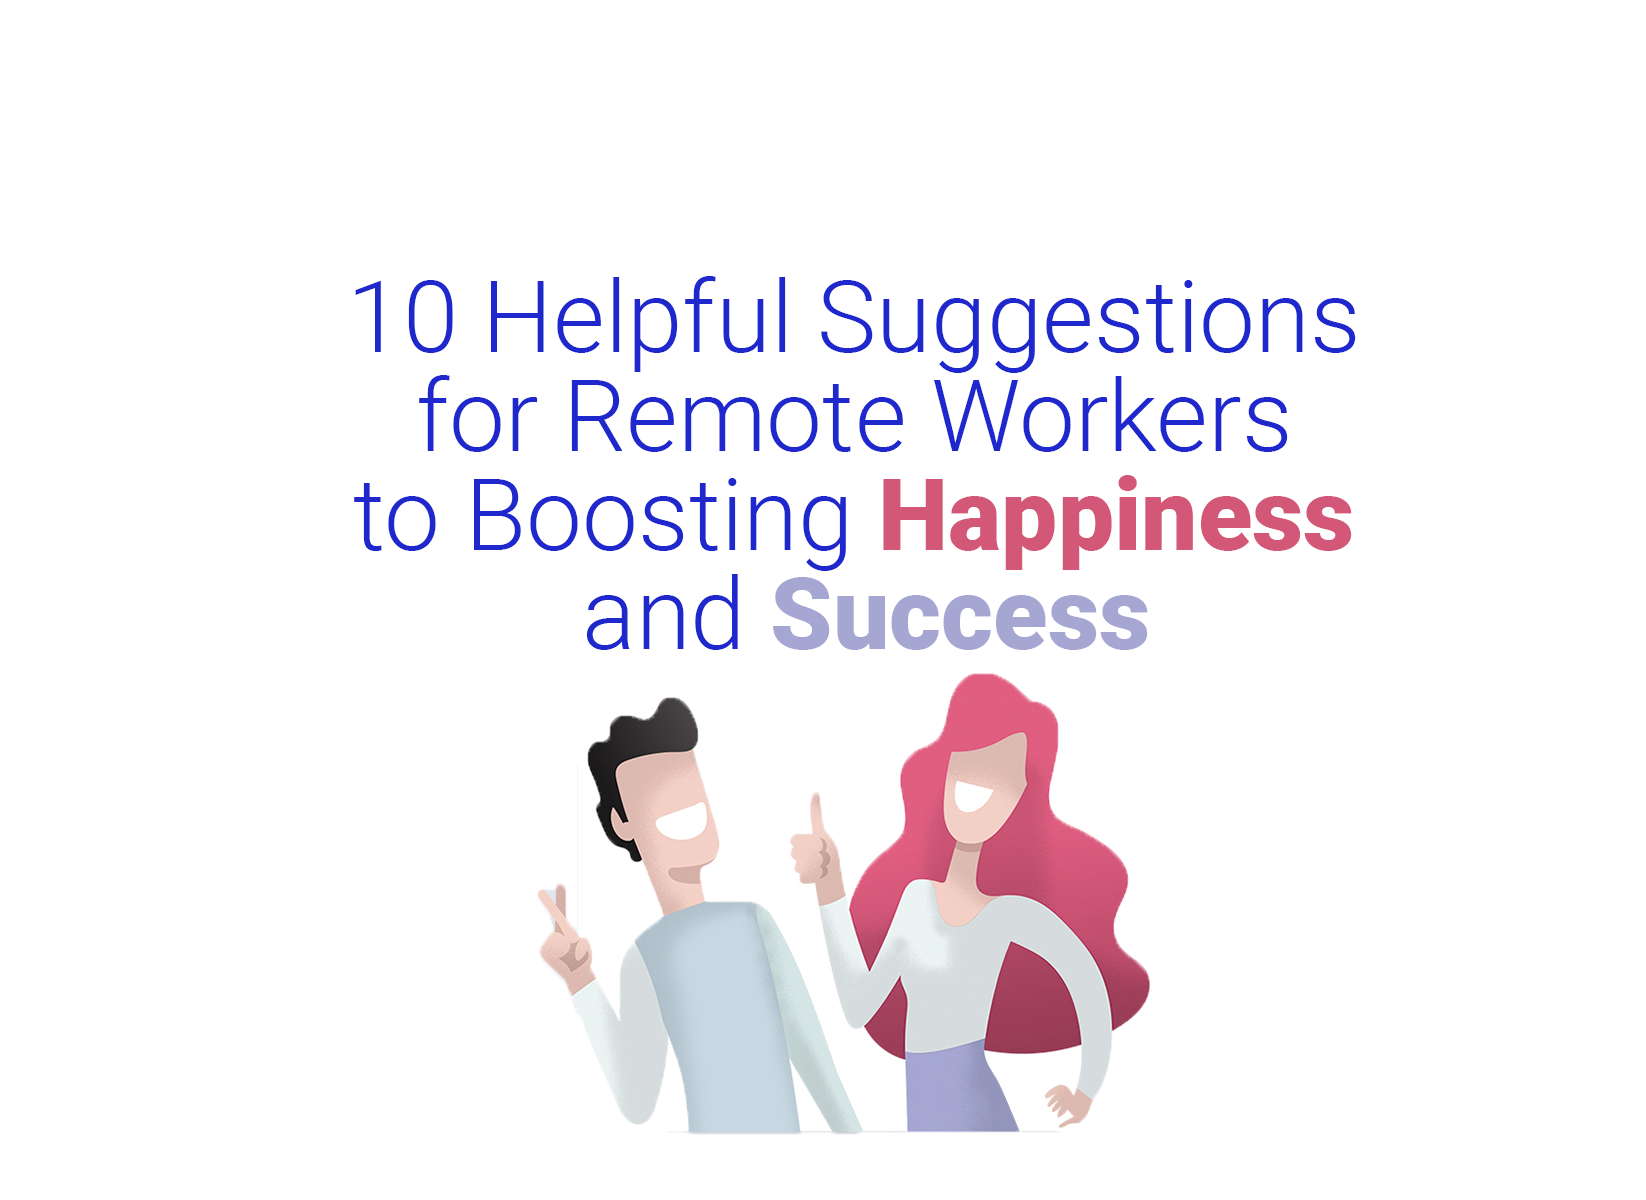 Ten Helpful Suggestions to Boost Success and Happiness for Remote Workers